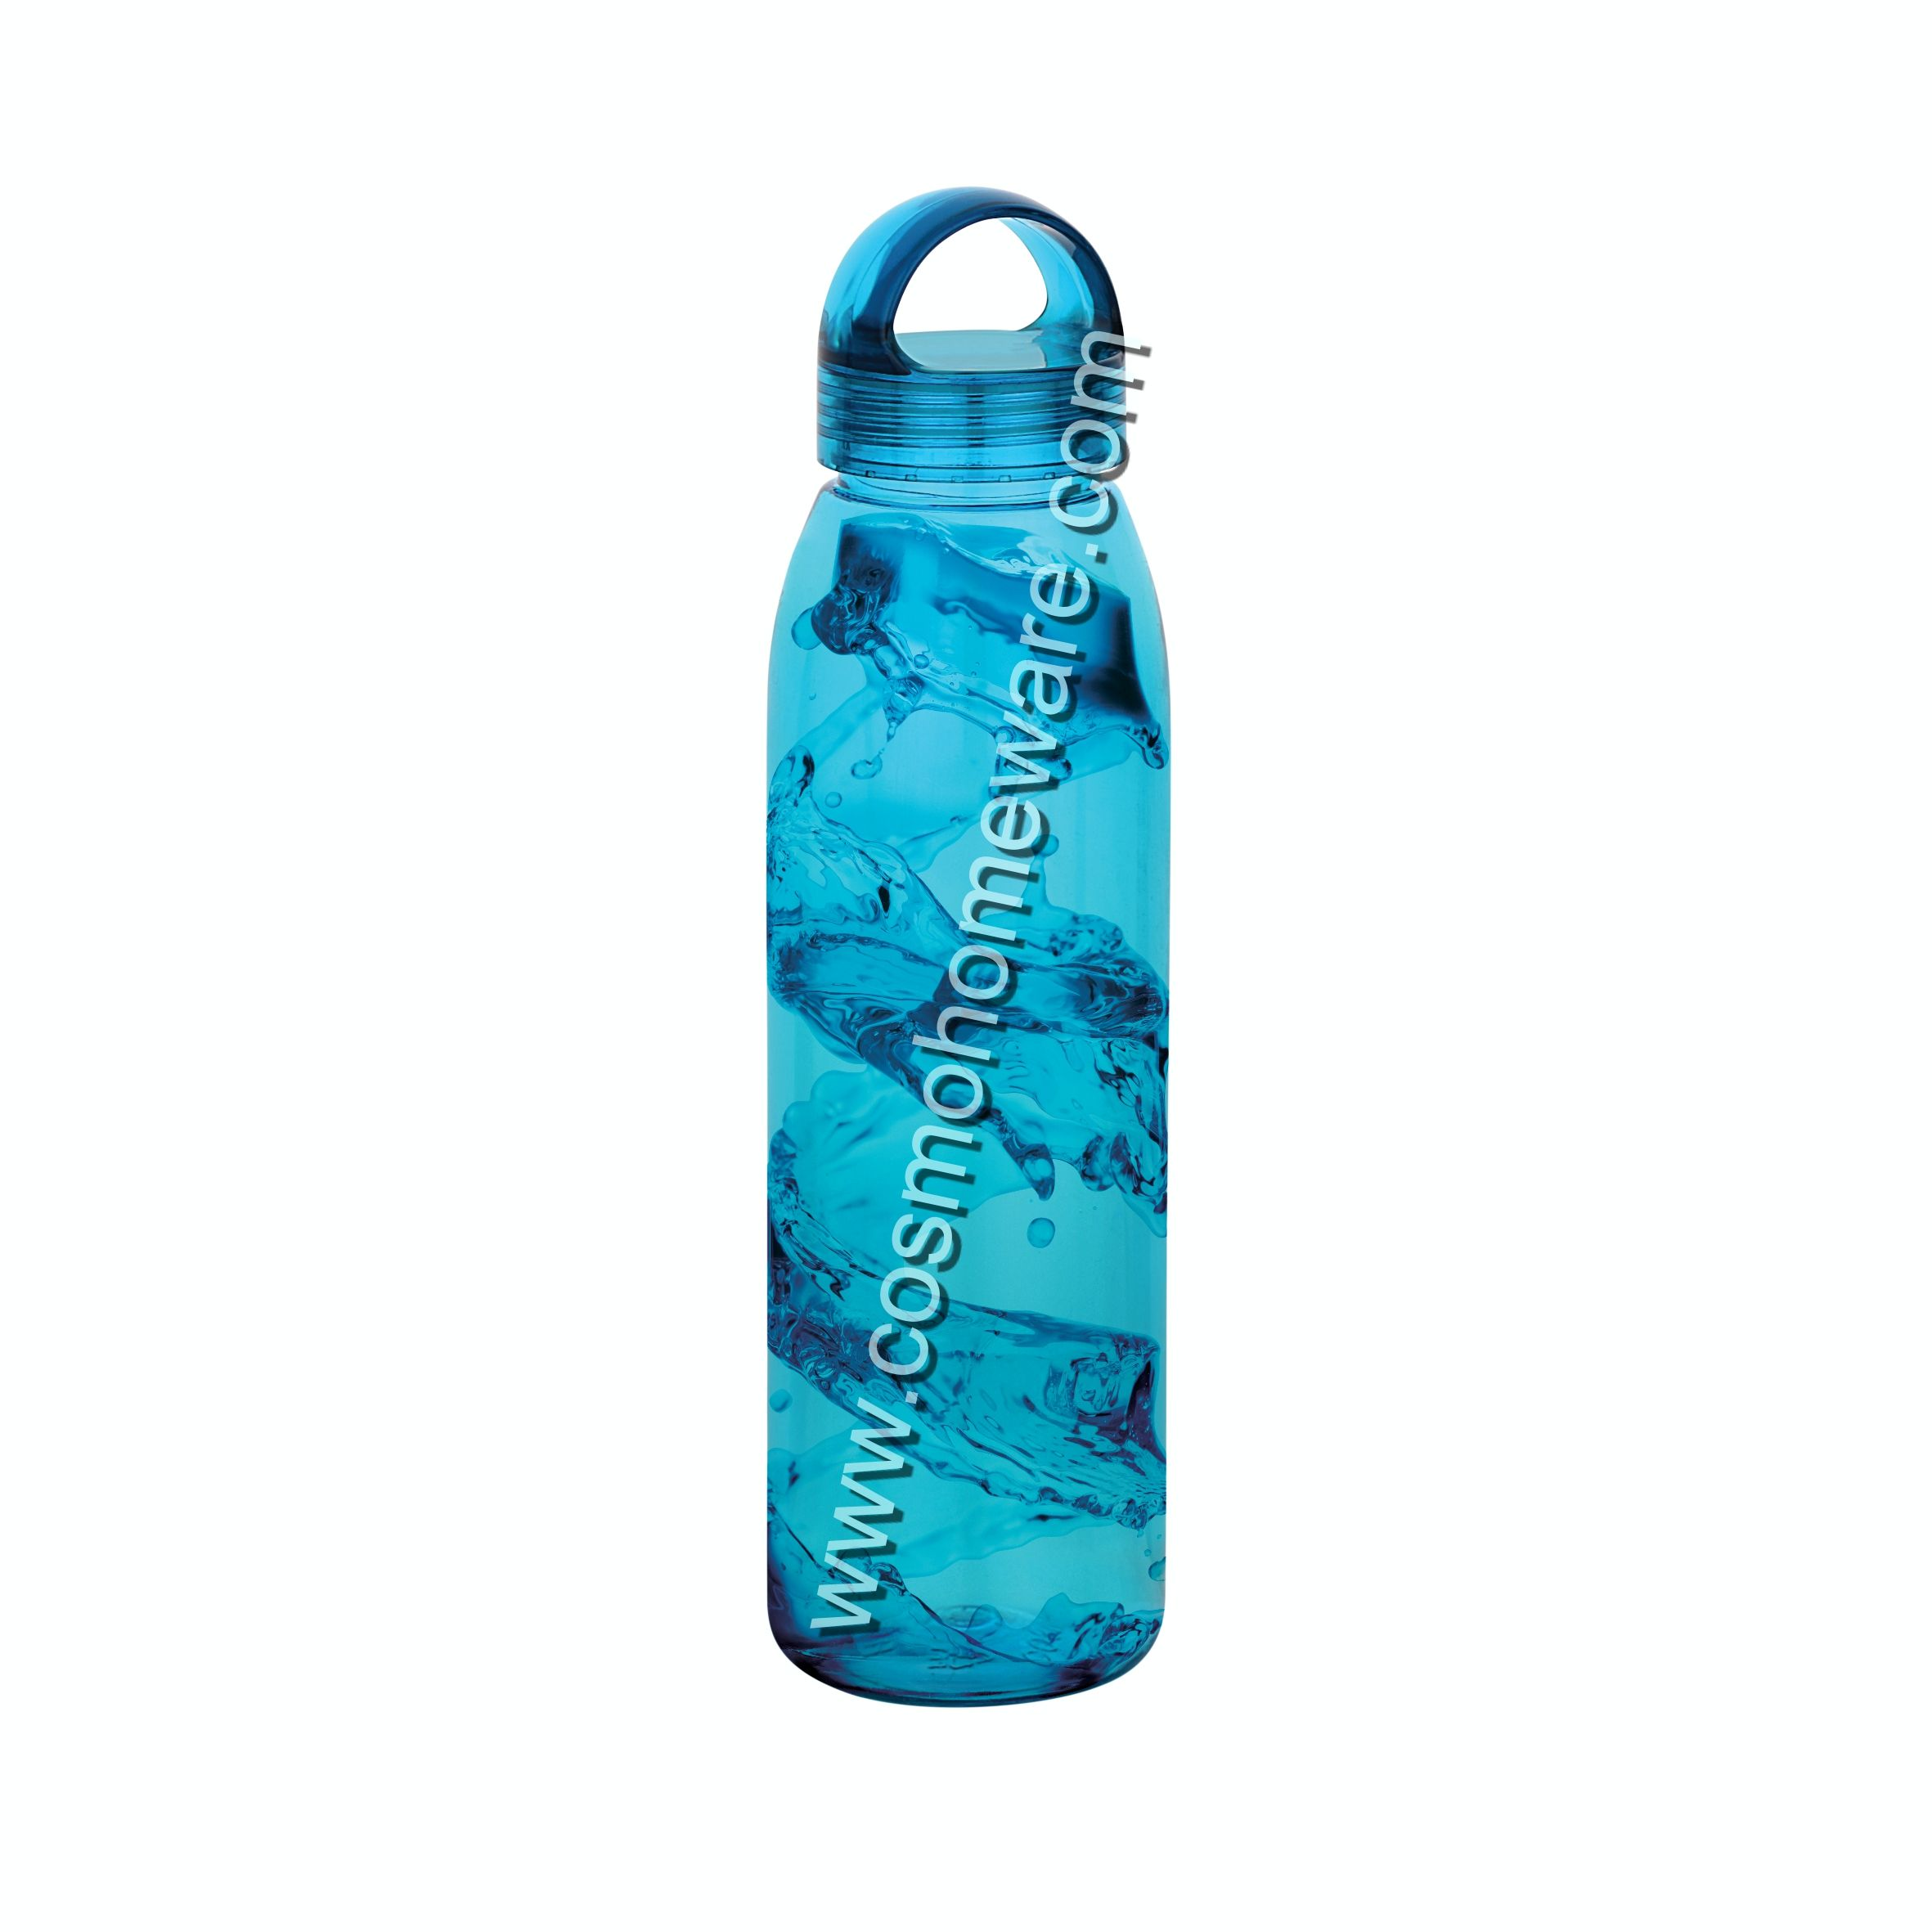 New Hot Selling Stylish 800ML 1000ML BPA Free PET Water Bottle with Unbreakable Hook cap For Gifting Wholesale